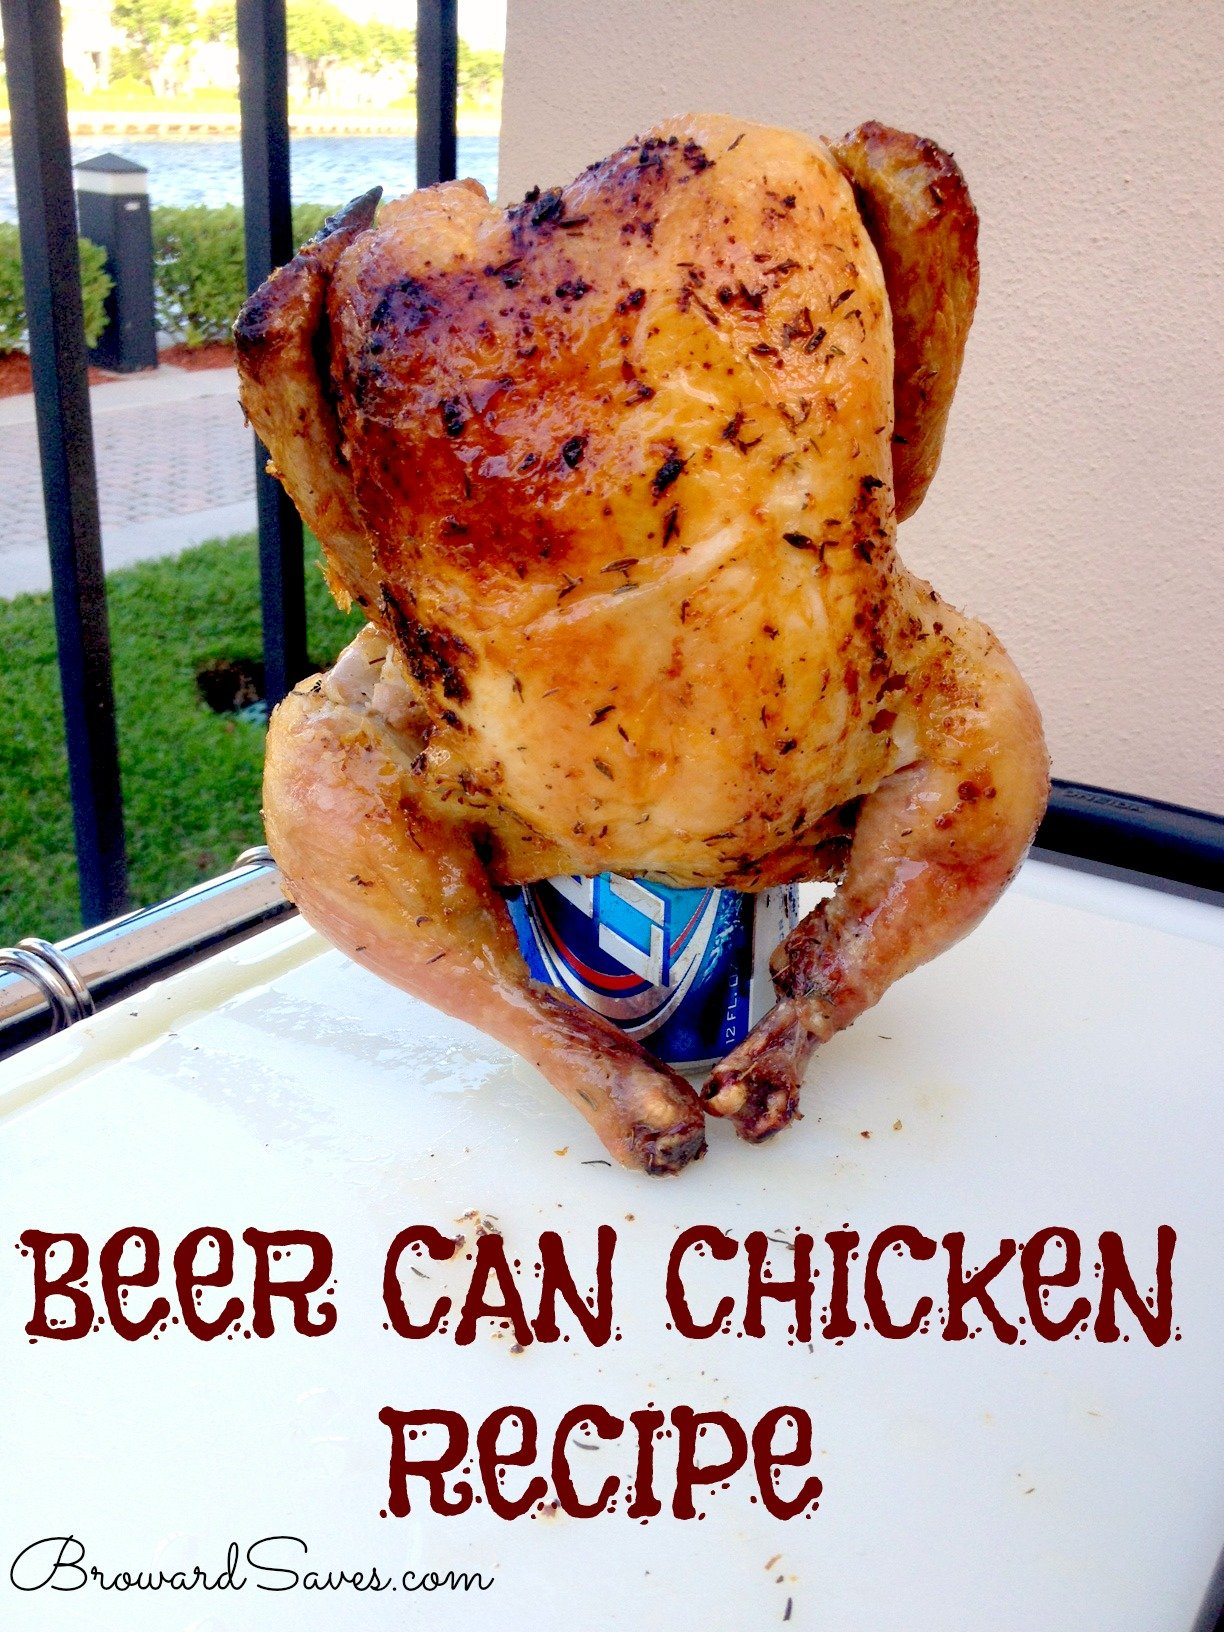 beer-can-chicken-recipe-broward-saves